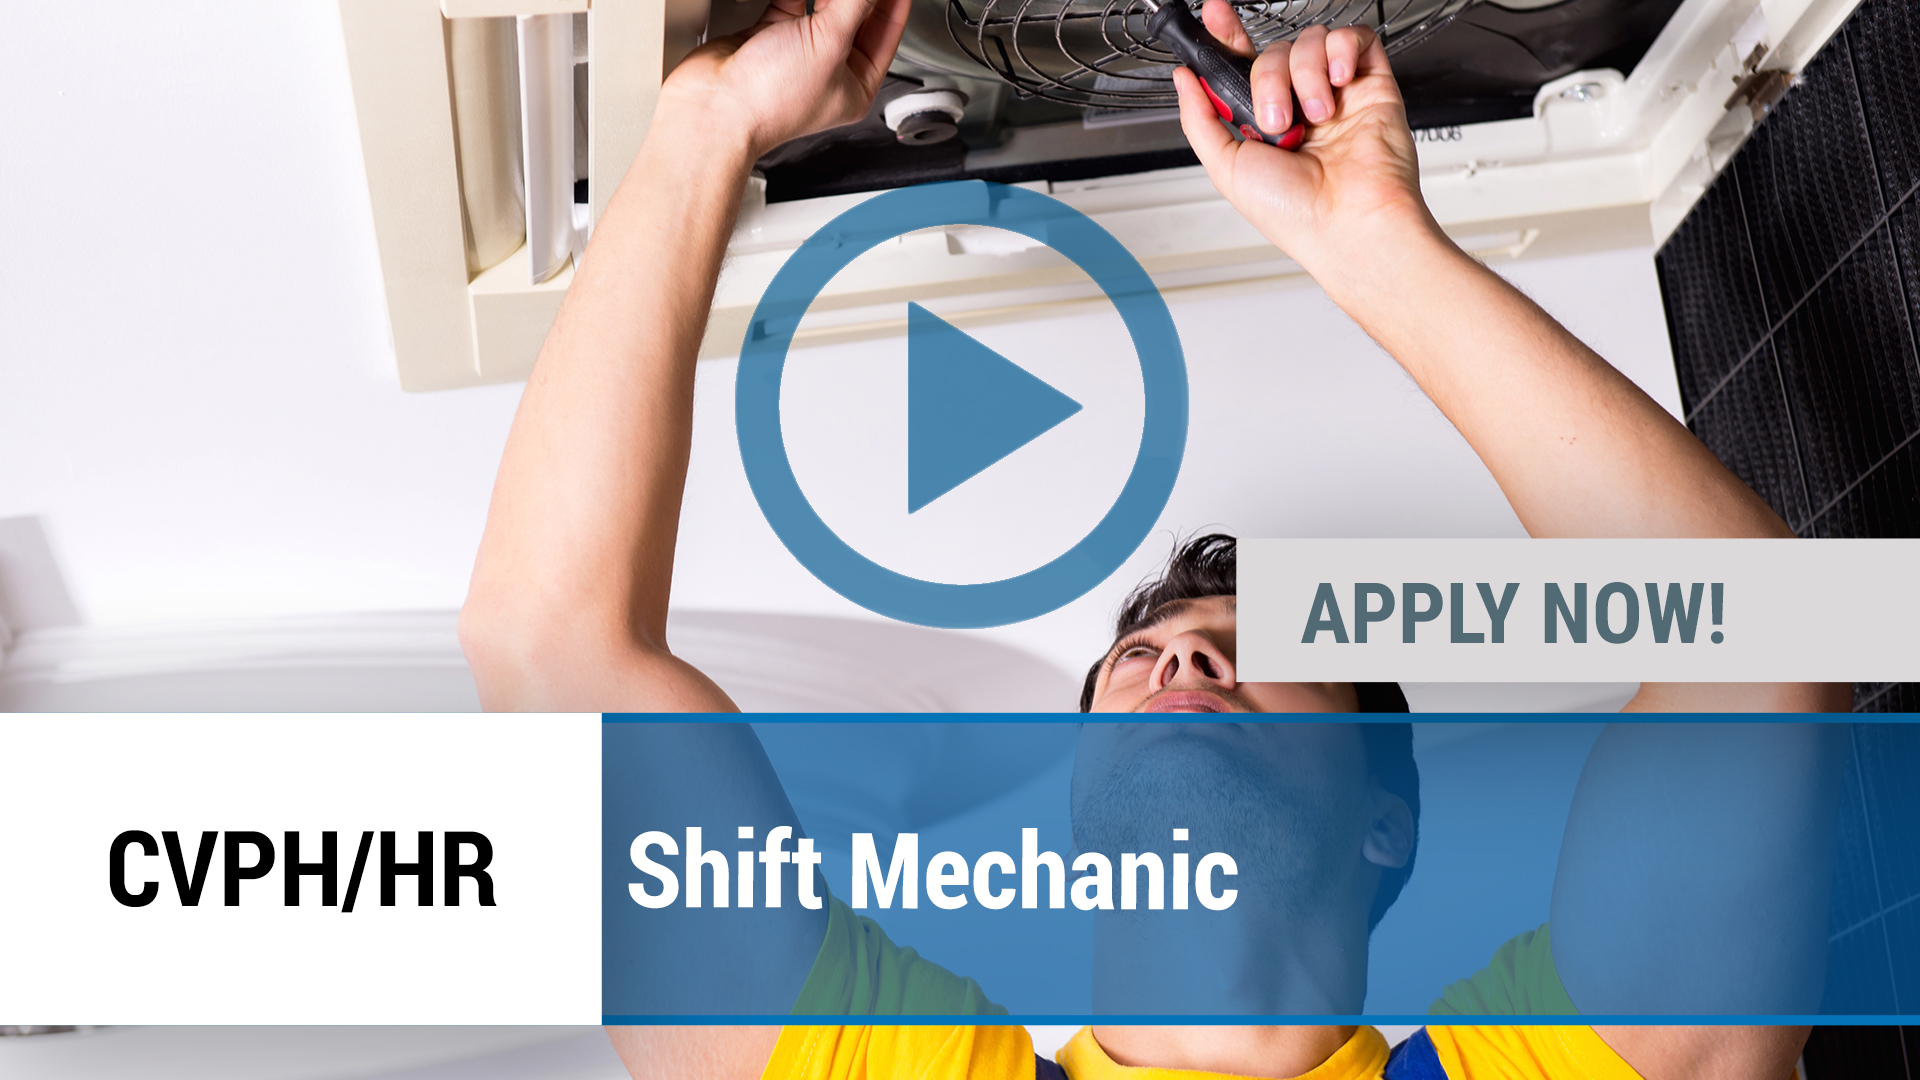 Watch our careers video for available job opening Shift Mechanic in Plattsburgh, NY